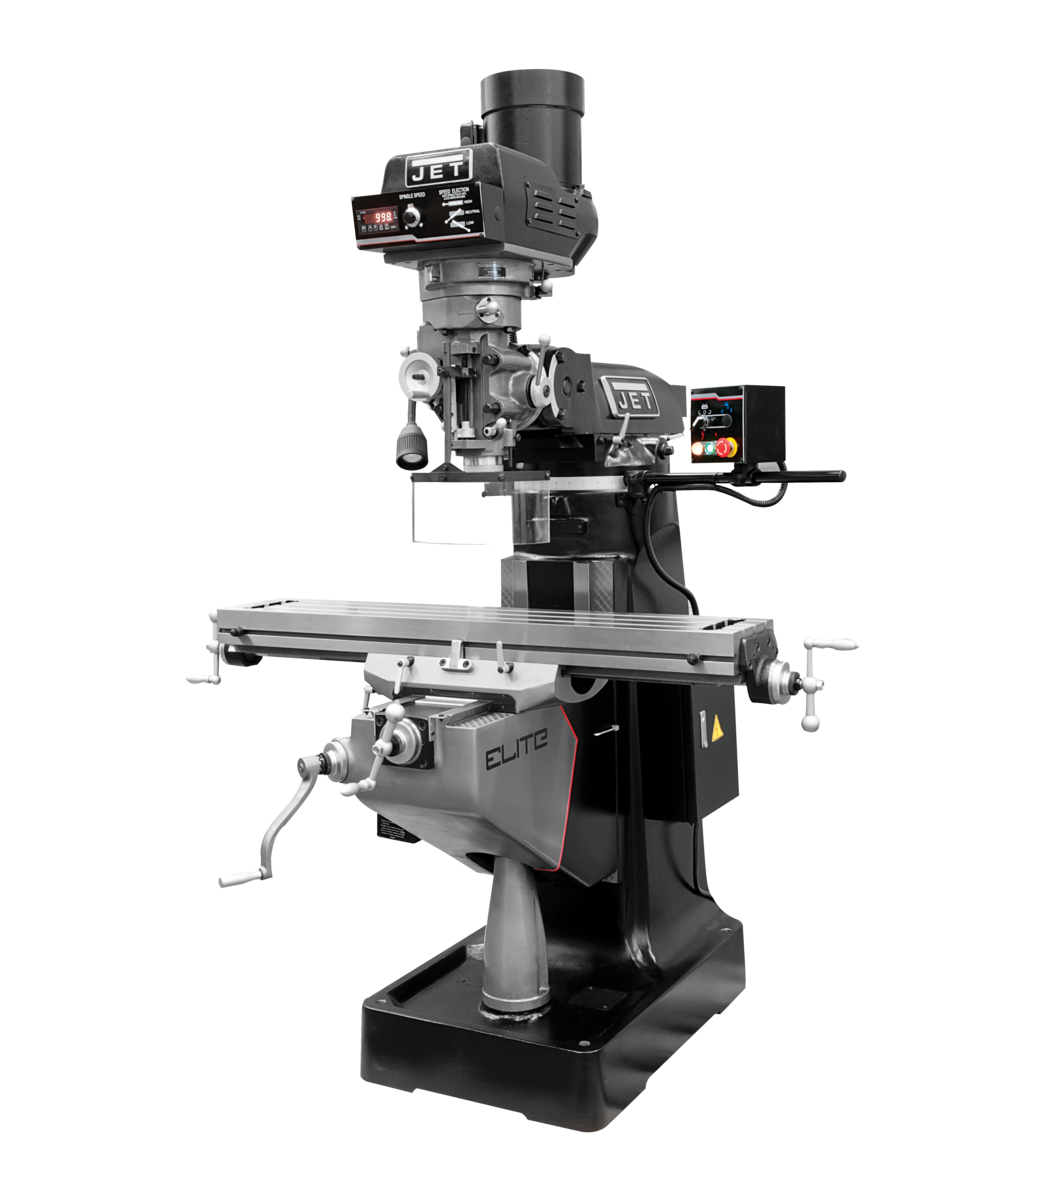 EVS-949 Mill with 2-Axis ACU-RITE 203 DRO and Servo X-Axis Powerfeed and USA Air Powered Draw Bar